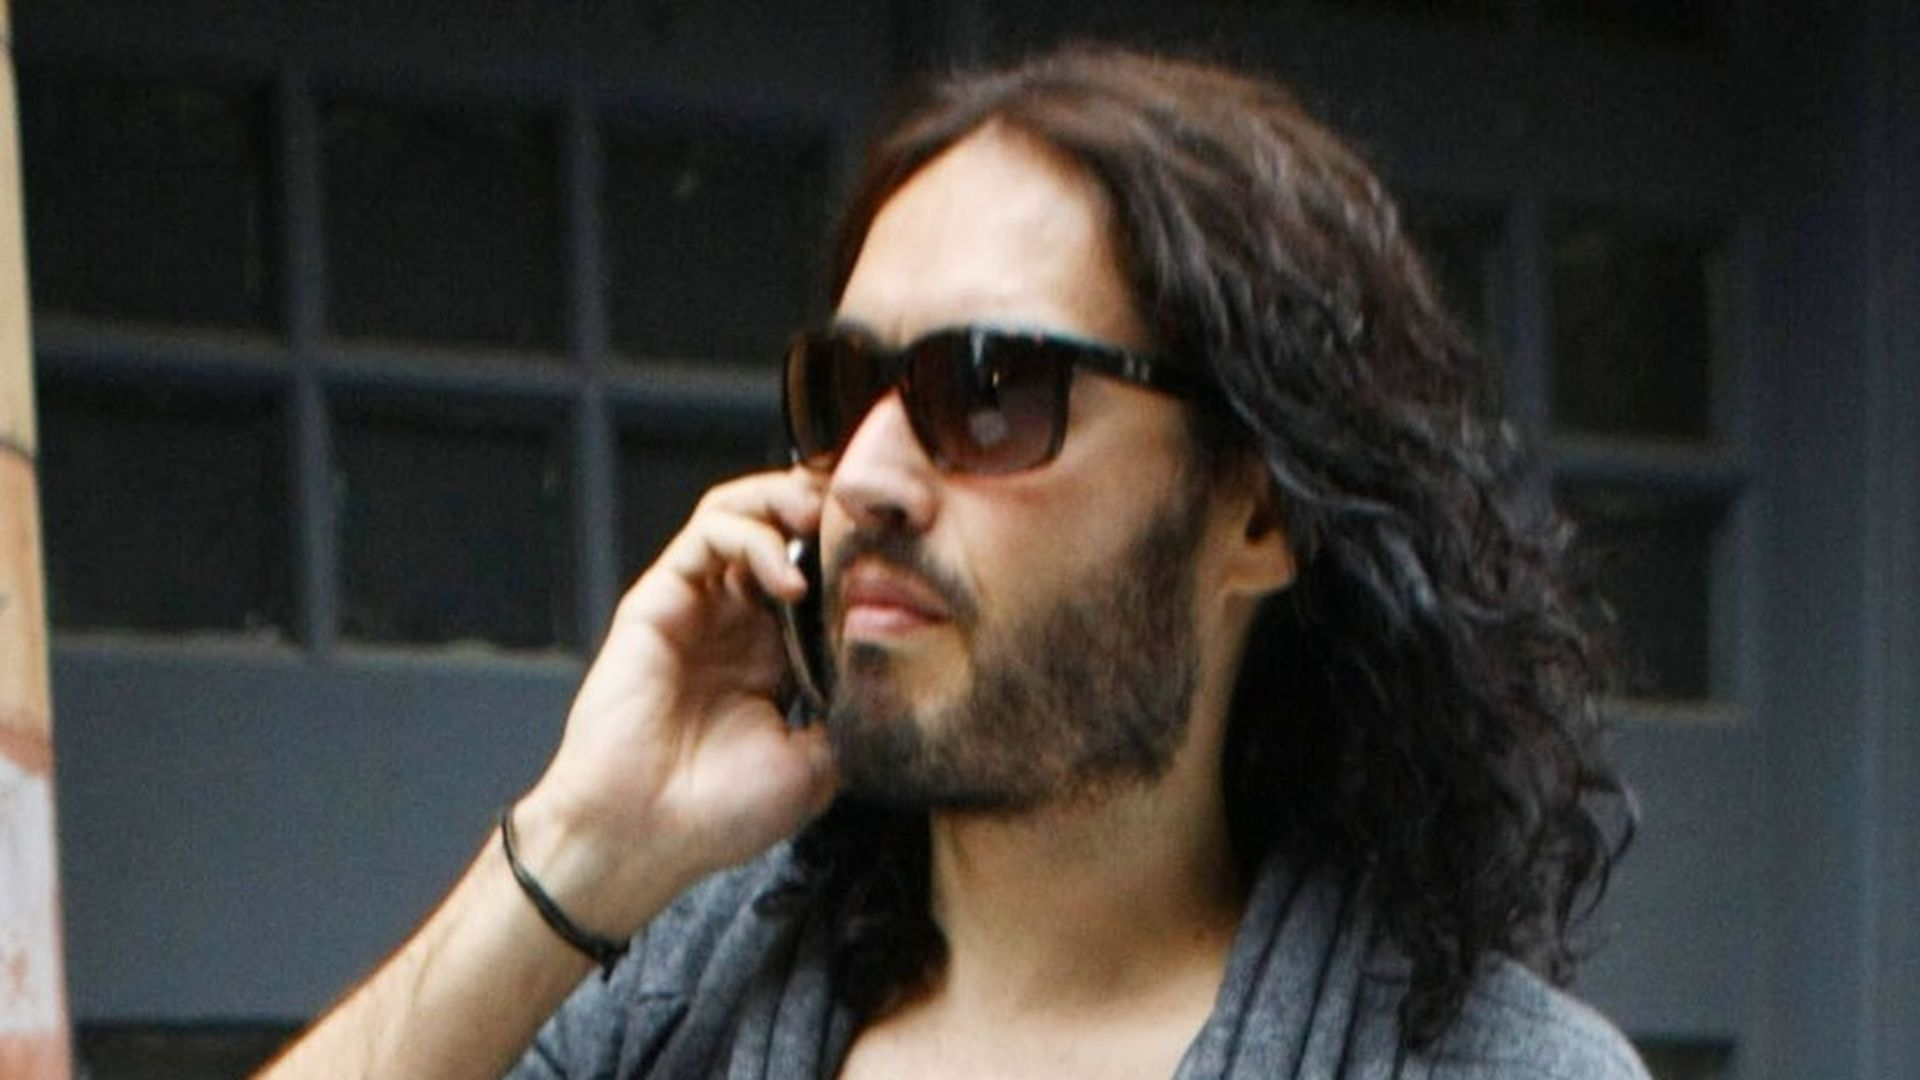 Beweis fr EheAus Russell Brand ohne Ehering  Promiflashde